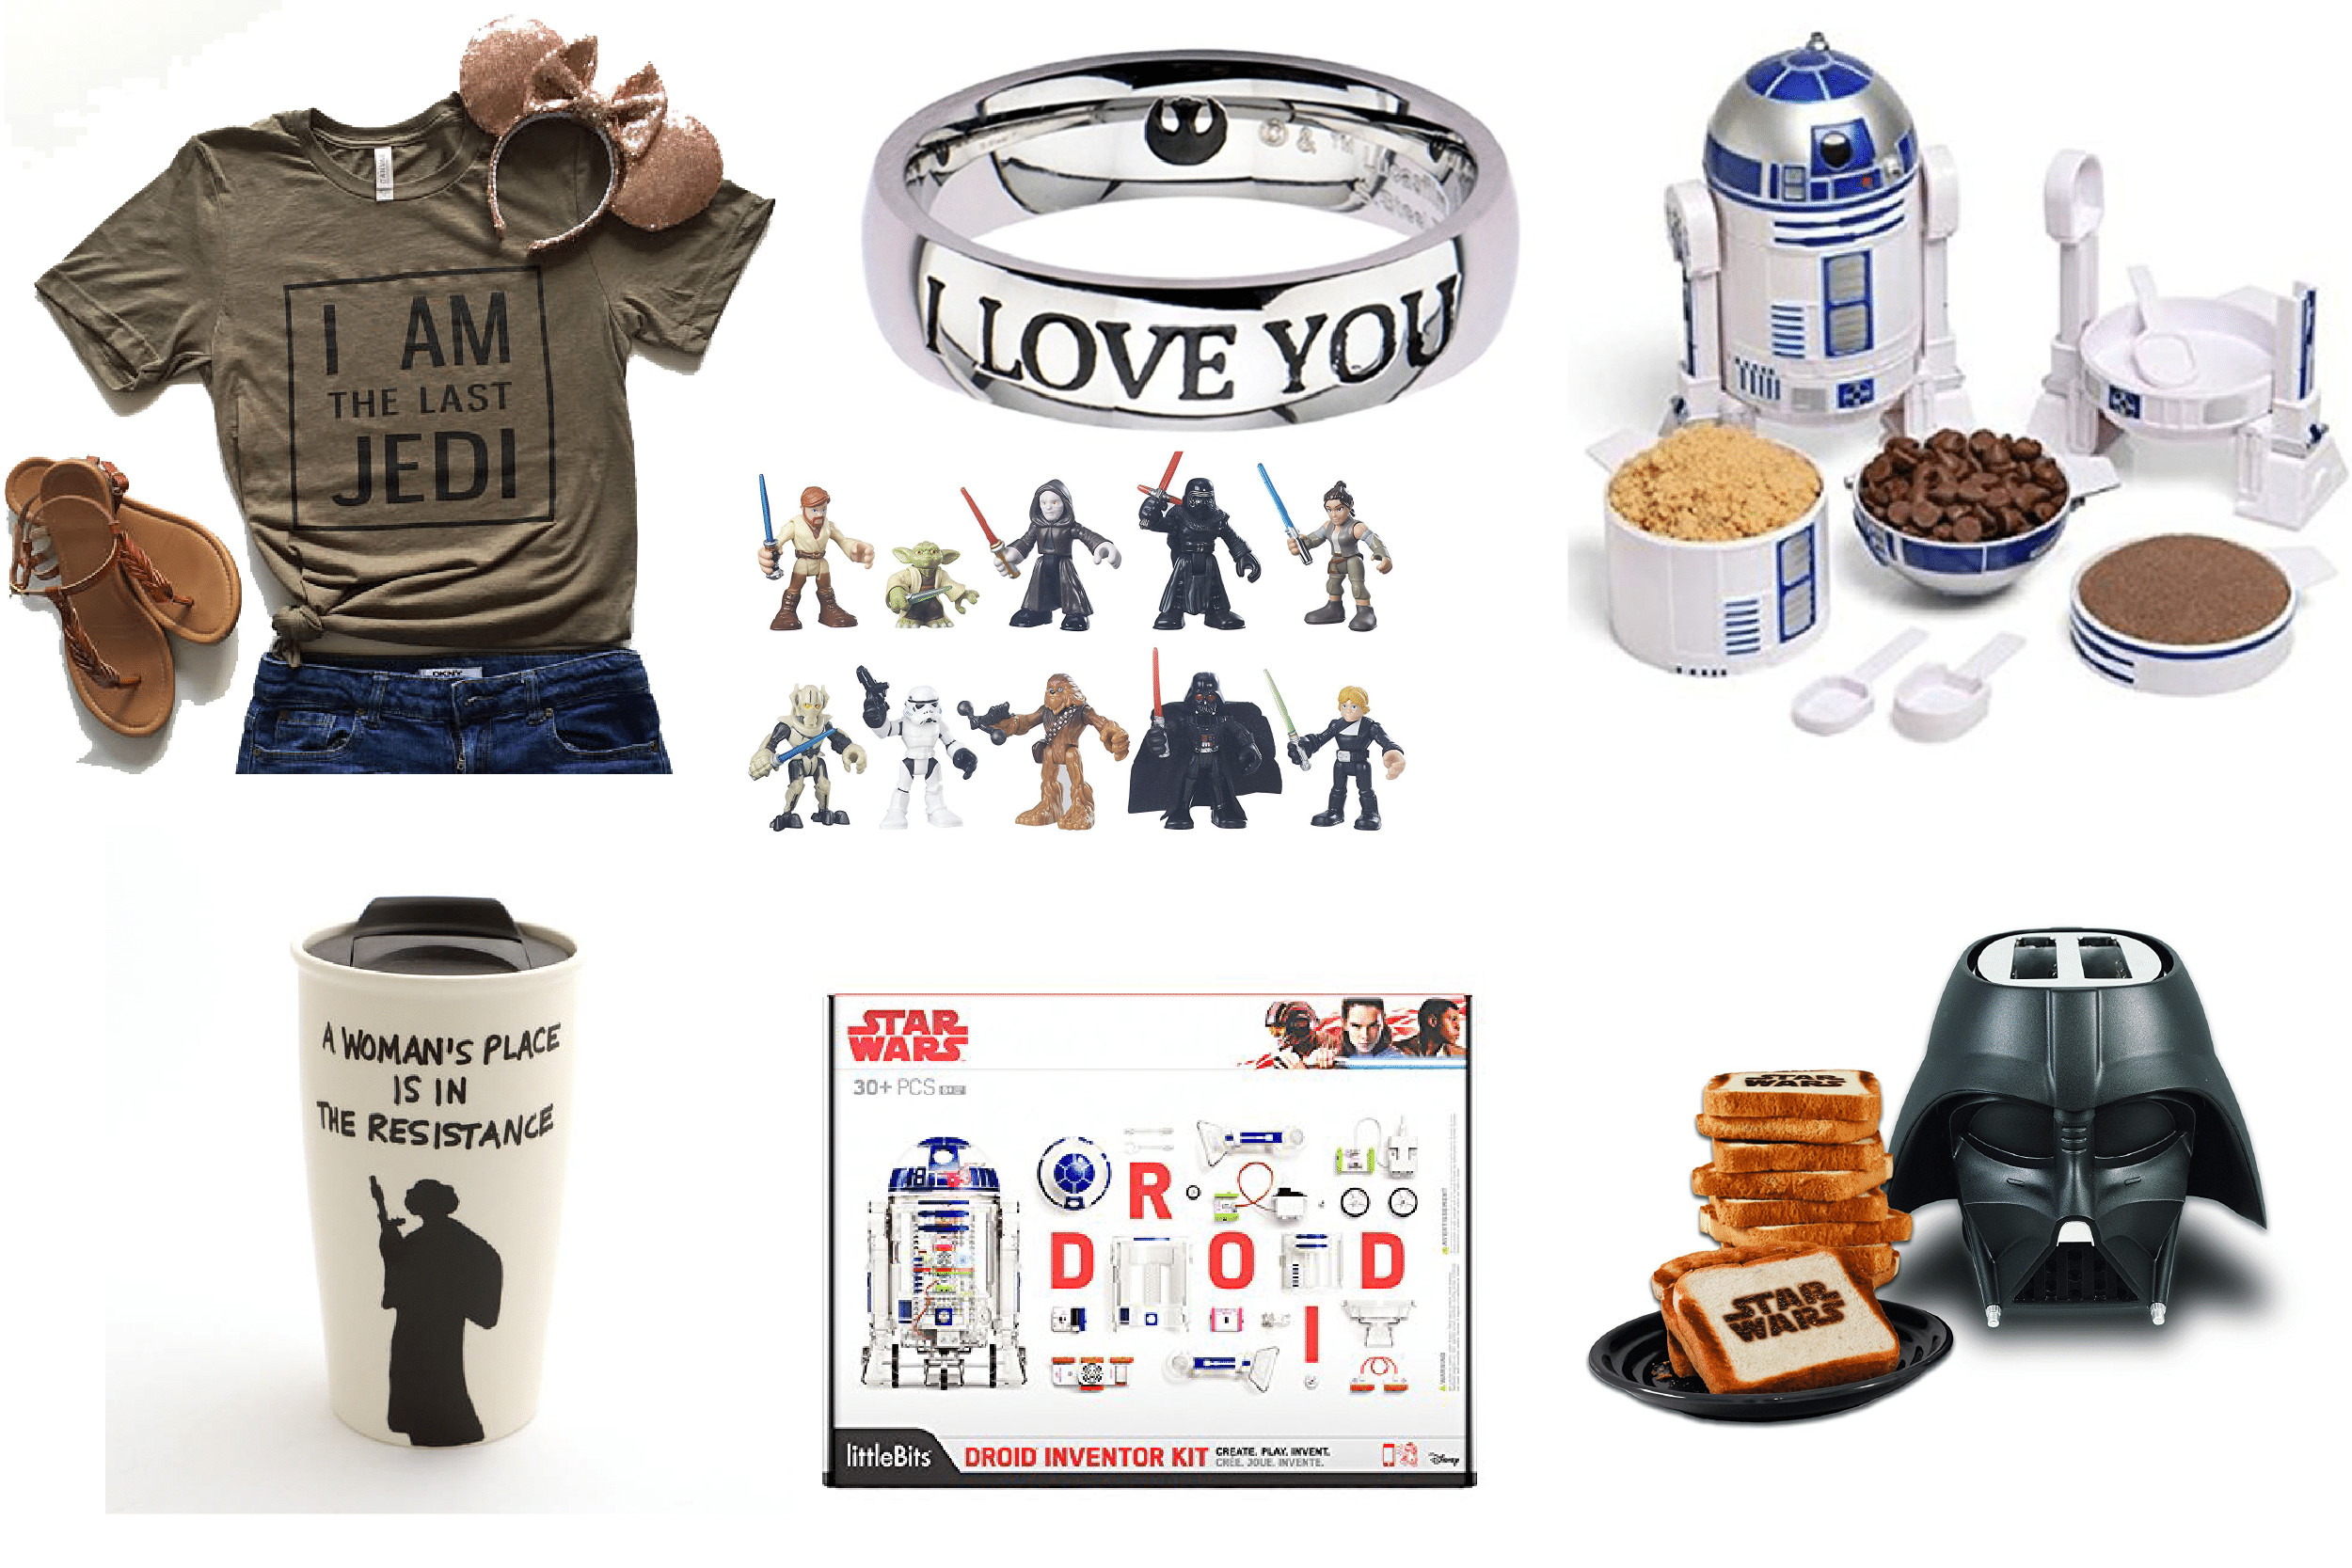 Best ideas about Star Wars Gift Ideas For Him . Save or Pin 24 Star Wars Gifts that Every Star Wars Fan Wants This Year Now.